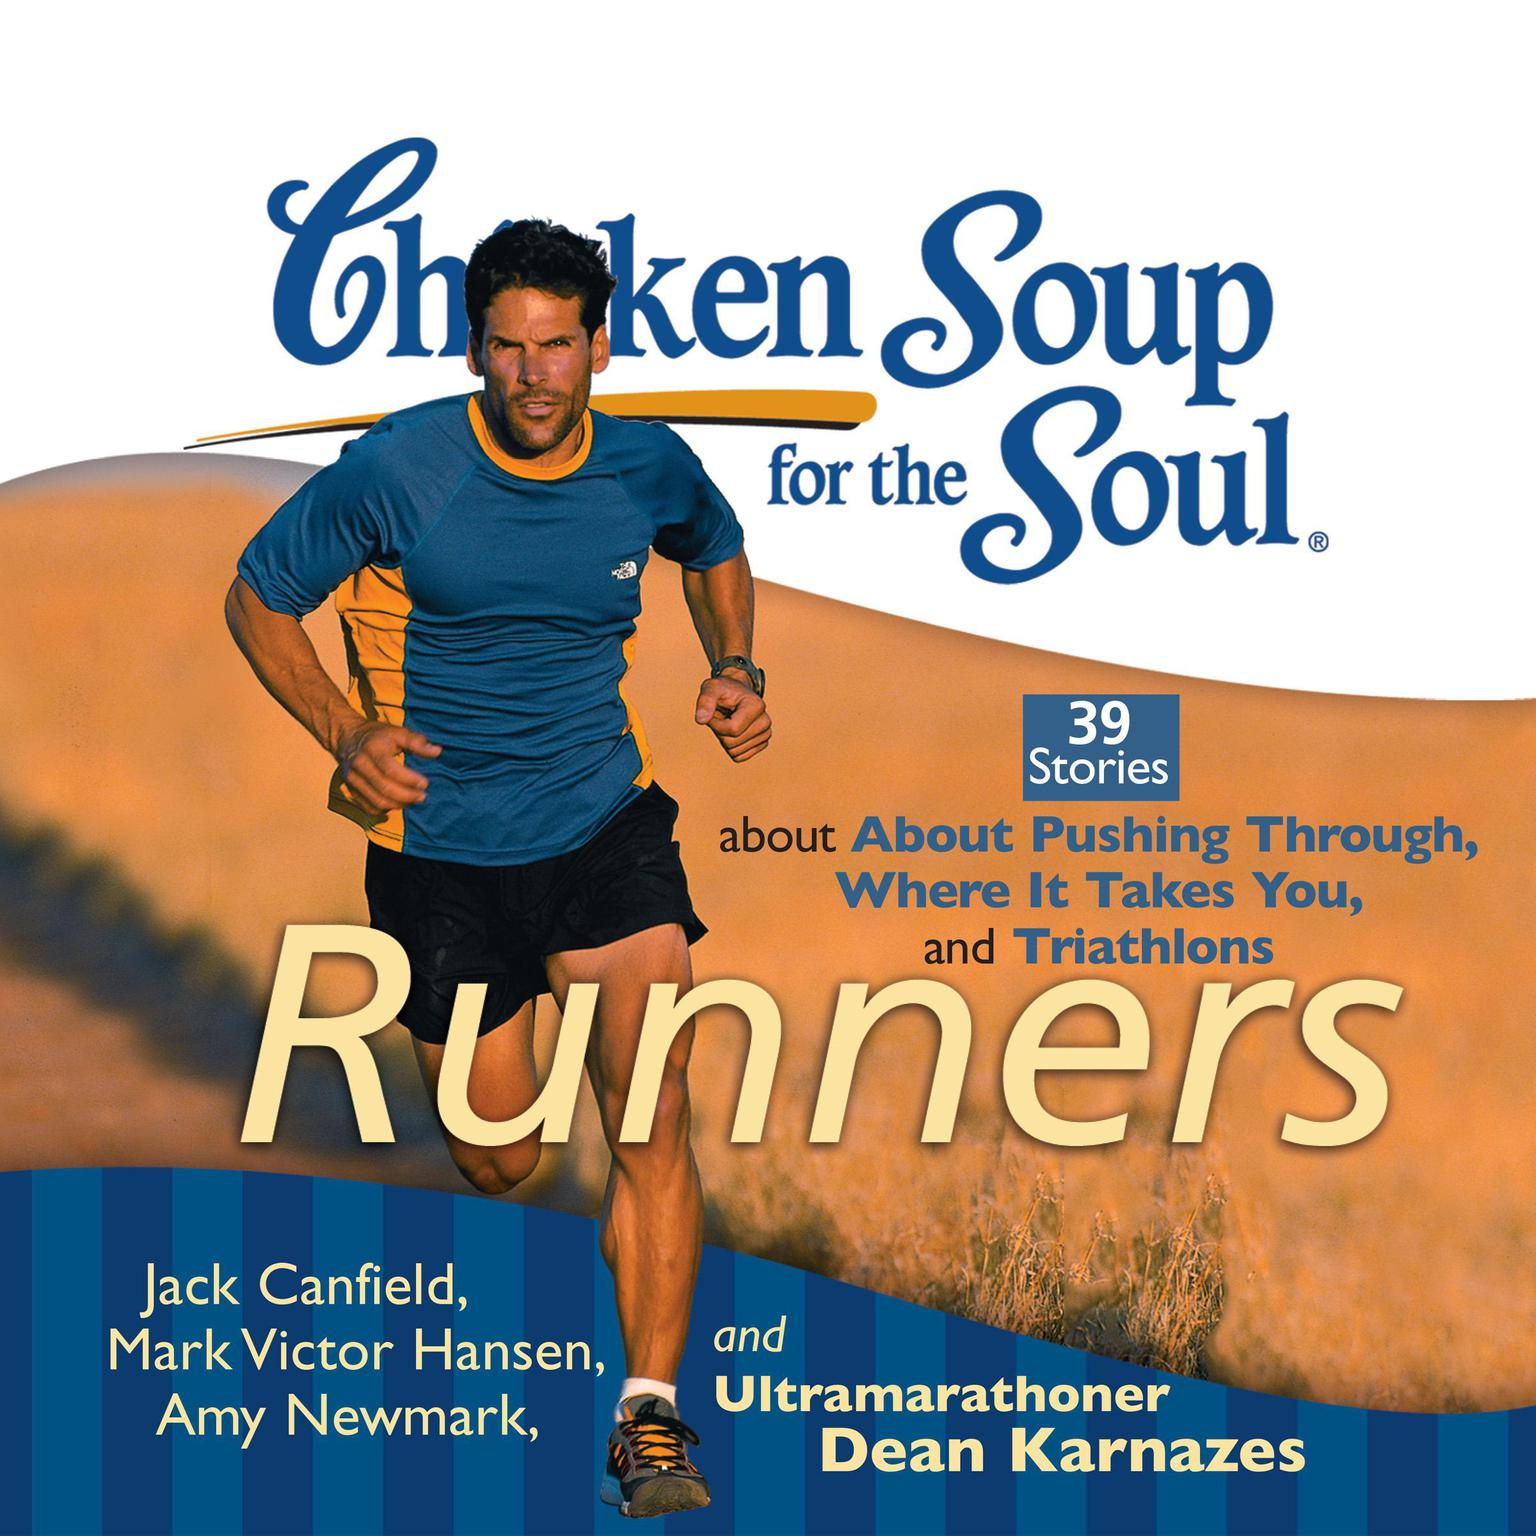 Printable Chicken Soup for the Soul: Runners - 39 Stories about Pushing Through, Where It Takes You, and Triathlons Audiobook Cover Art